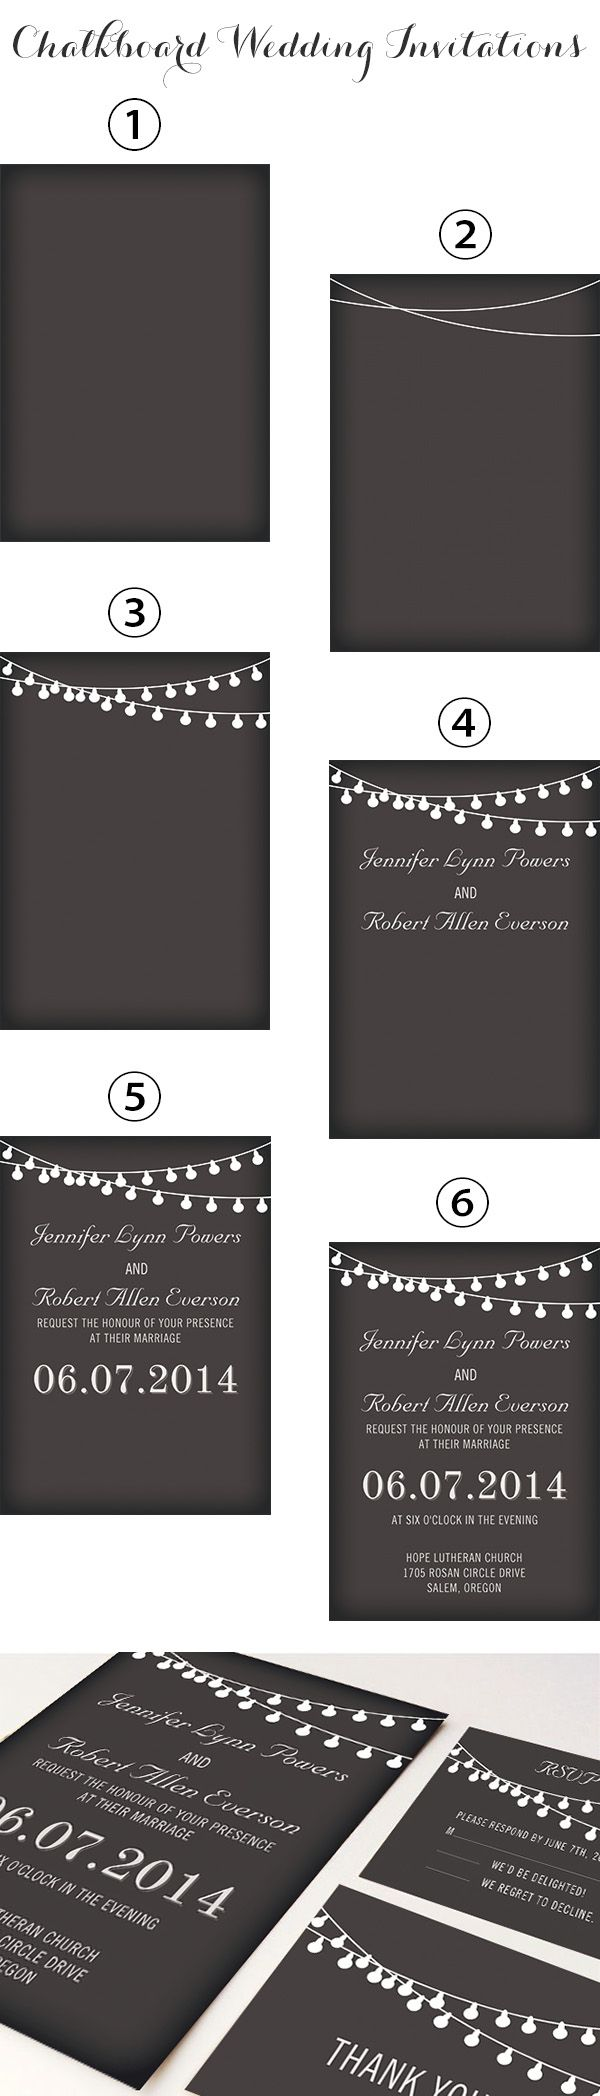 rustic themed chalkboard wedding invitations with string lights inspired by backyard wedding ideas